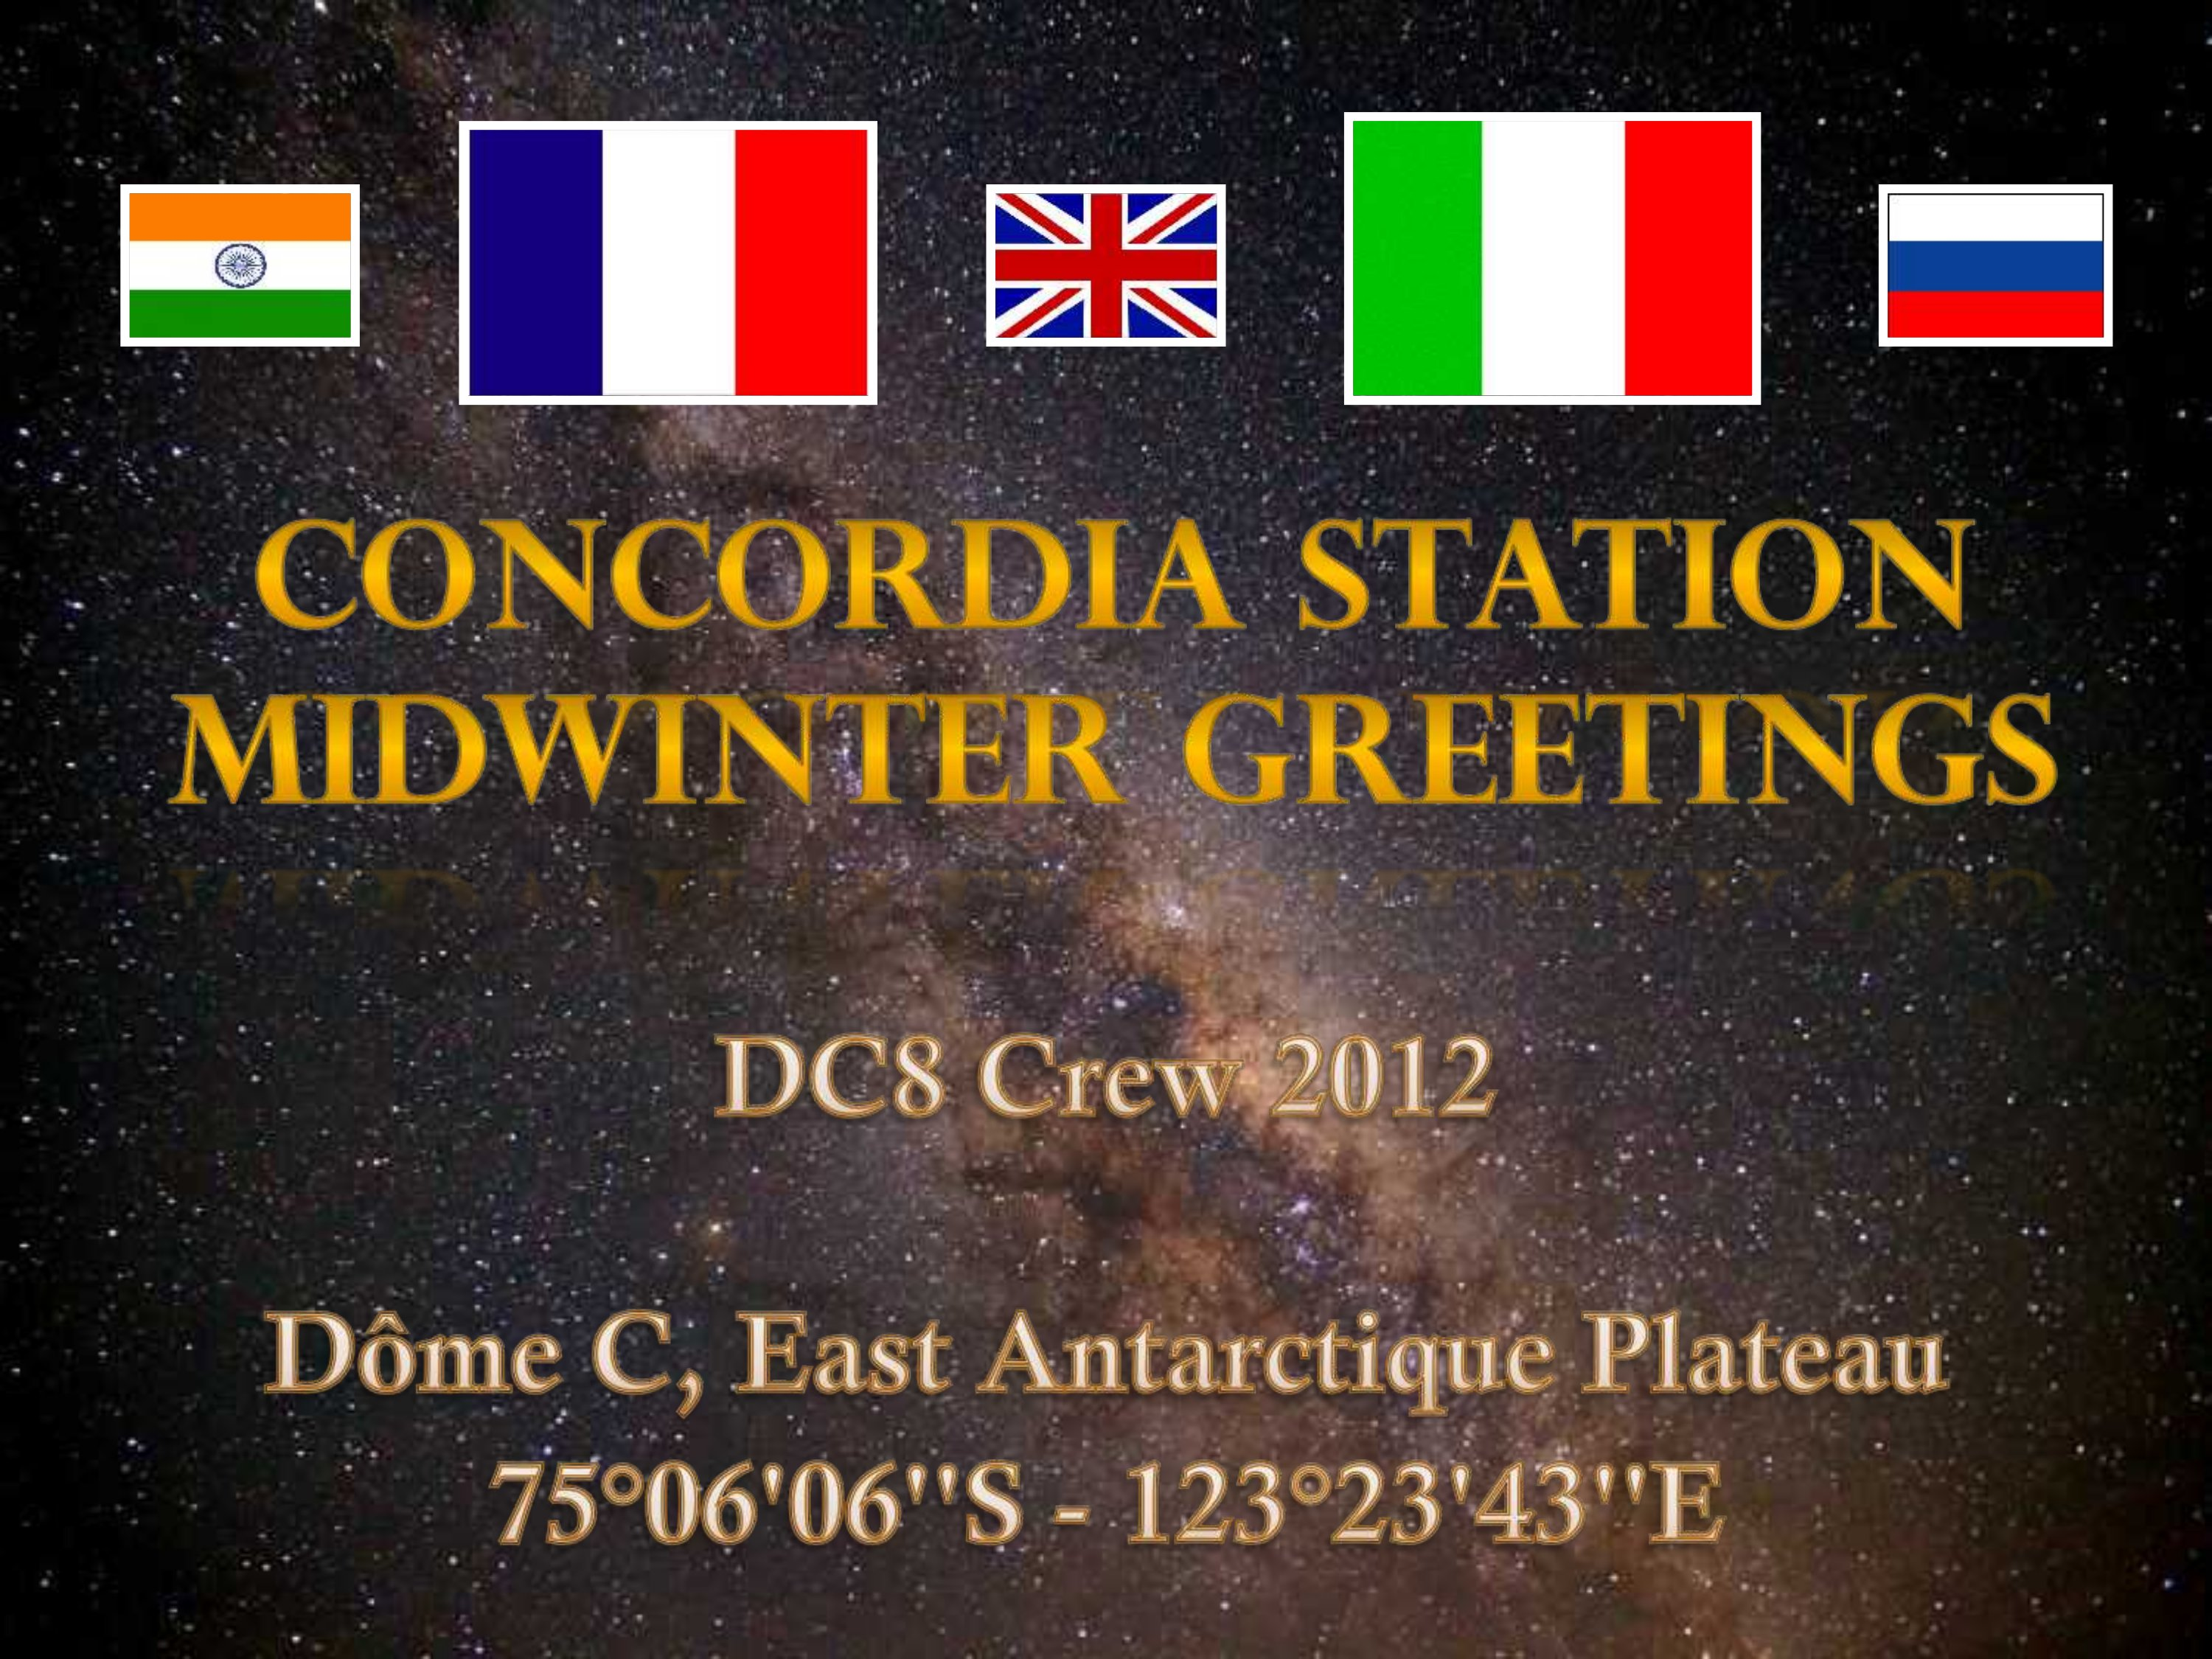 Half Way Somewhere Midwinter Midsummer Greetings From Concordia